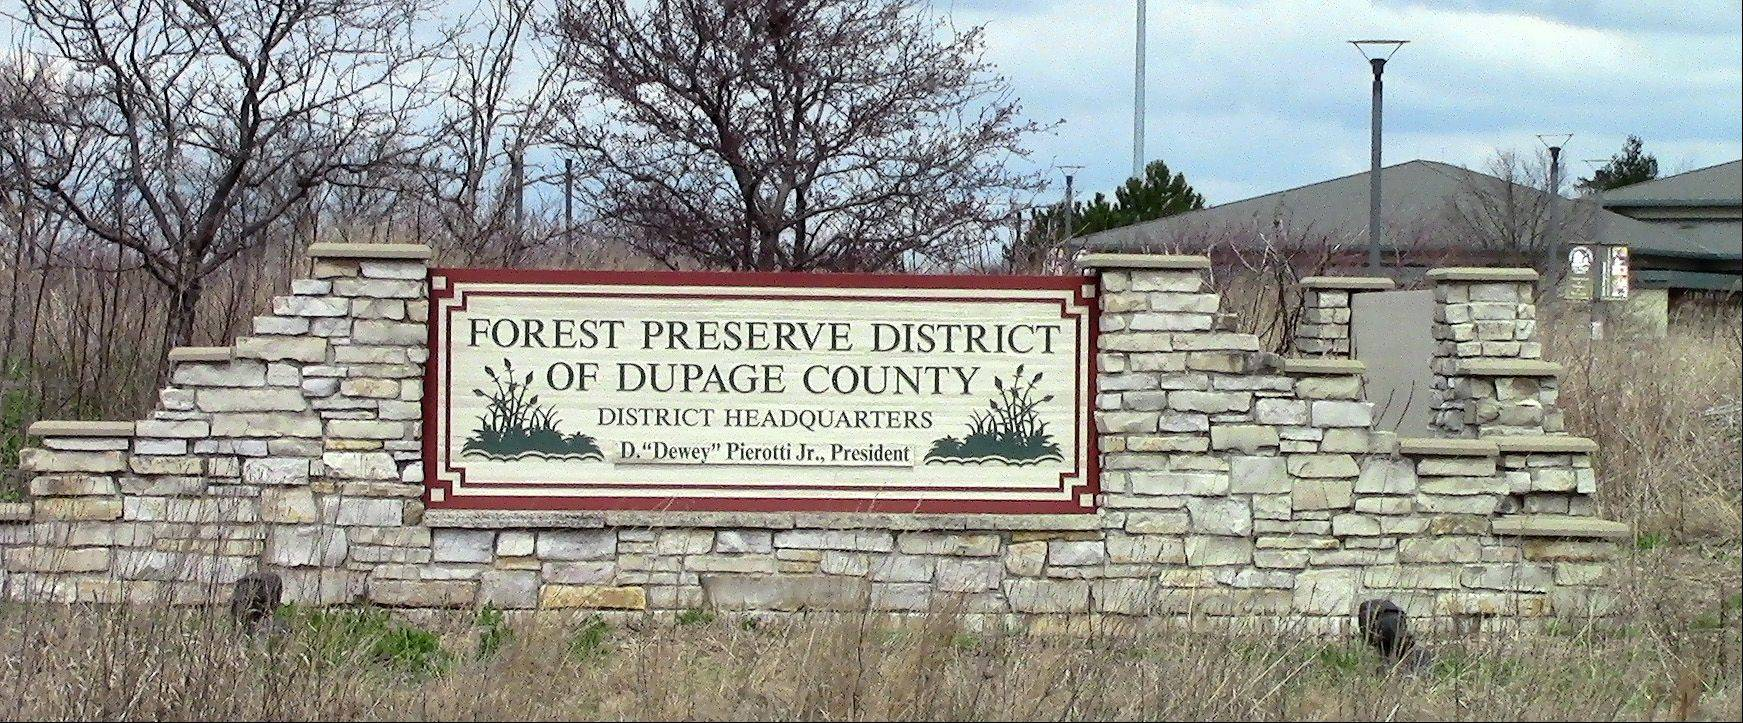 DuPage County Forest Preserve President D. Dewey Pierotti's name appears on 68 signs at key sites around the county, including the district's headquarters along Naperville Road in Wheaton.